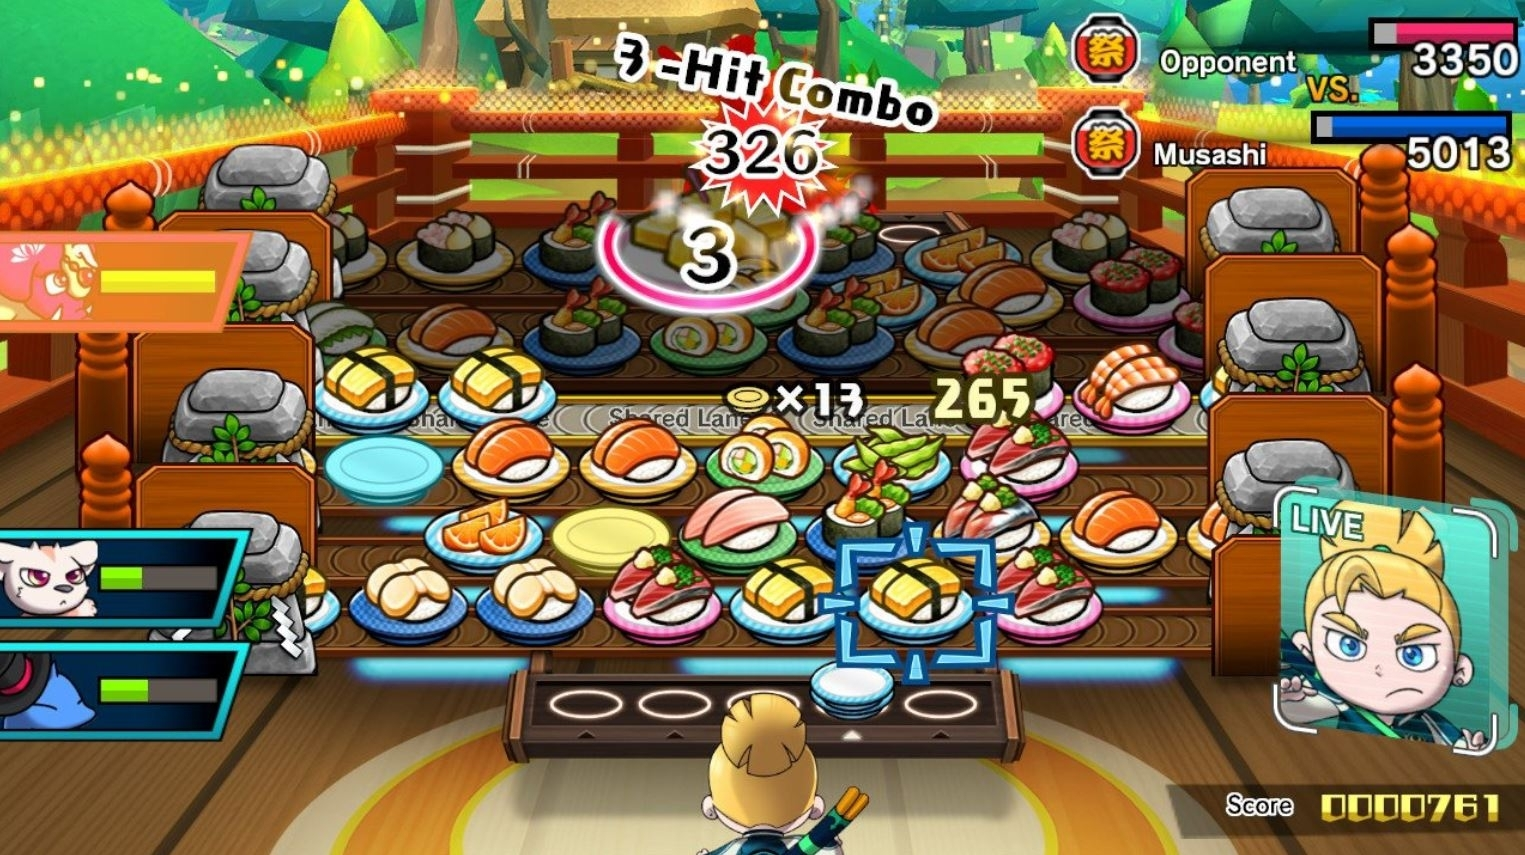 Скриншот из игры Sushi Striker: The Way of Sushido под номером 1